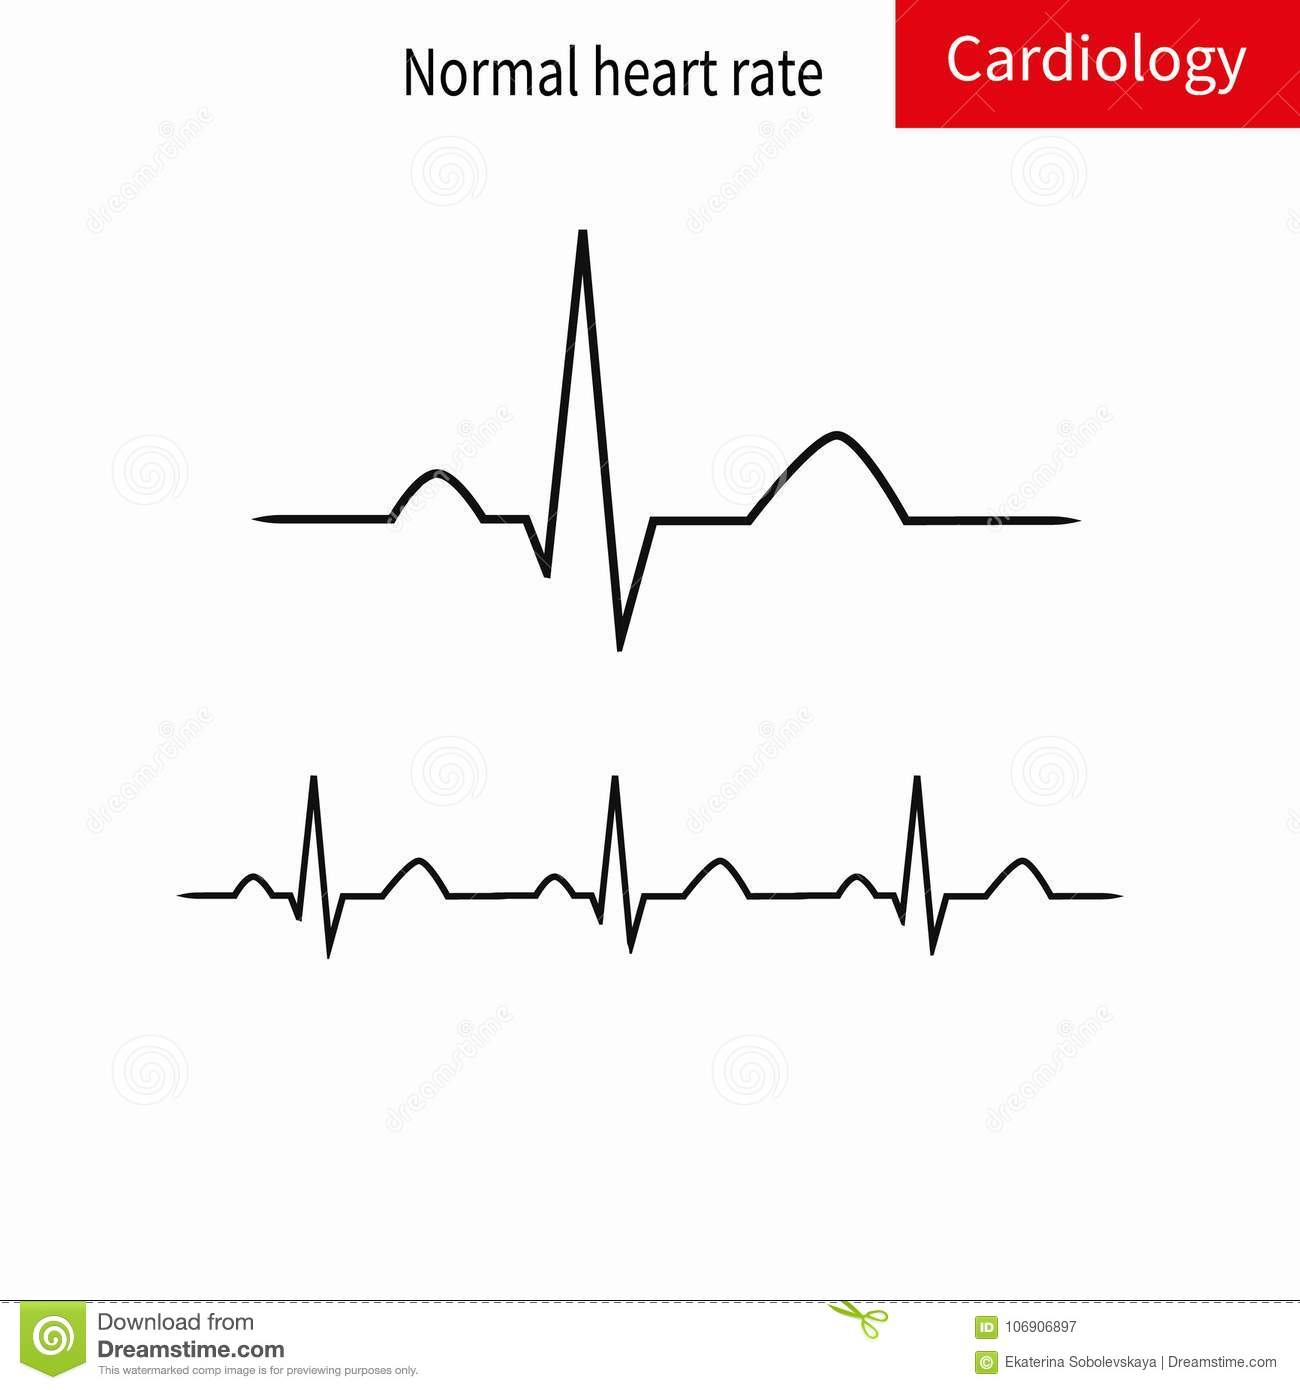 Normal ECG complex and normal sinus rhythm.